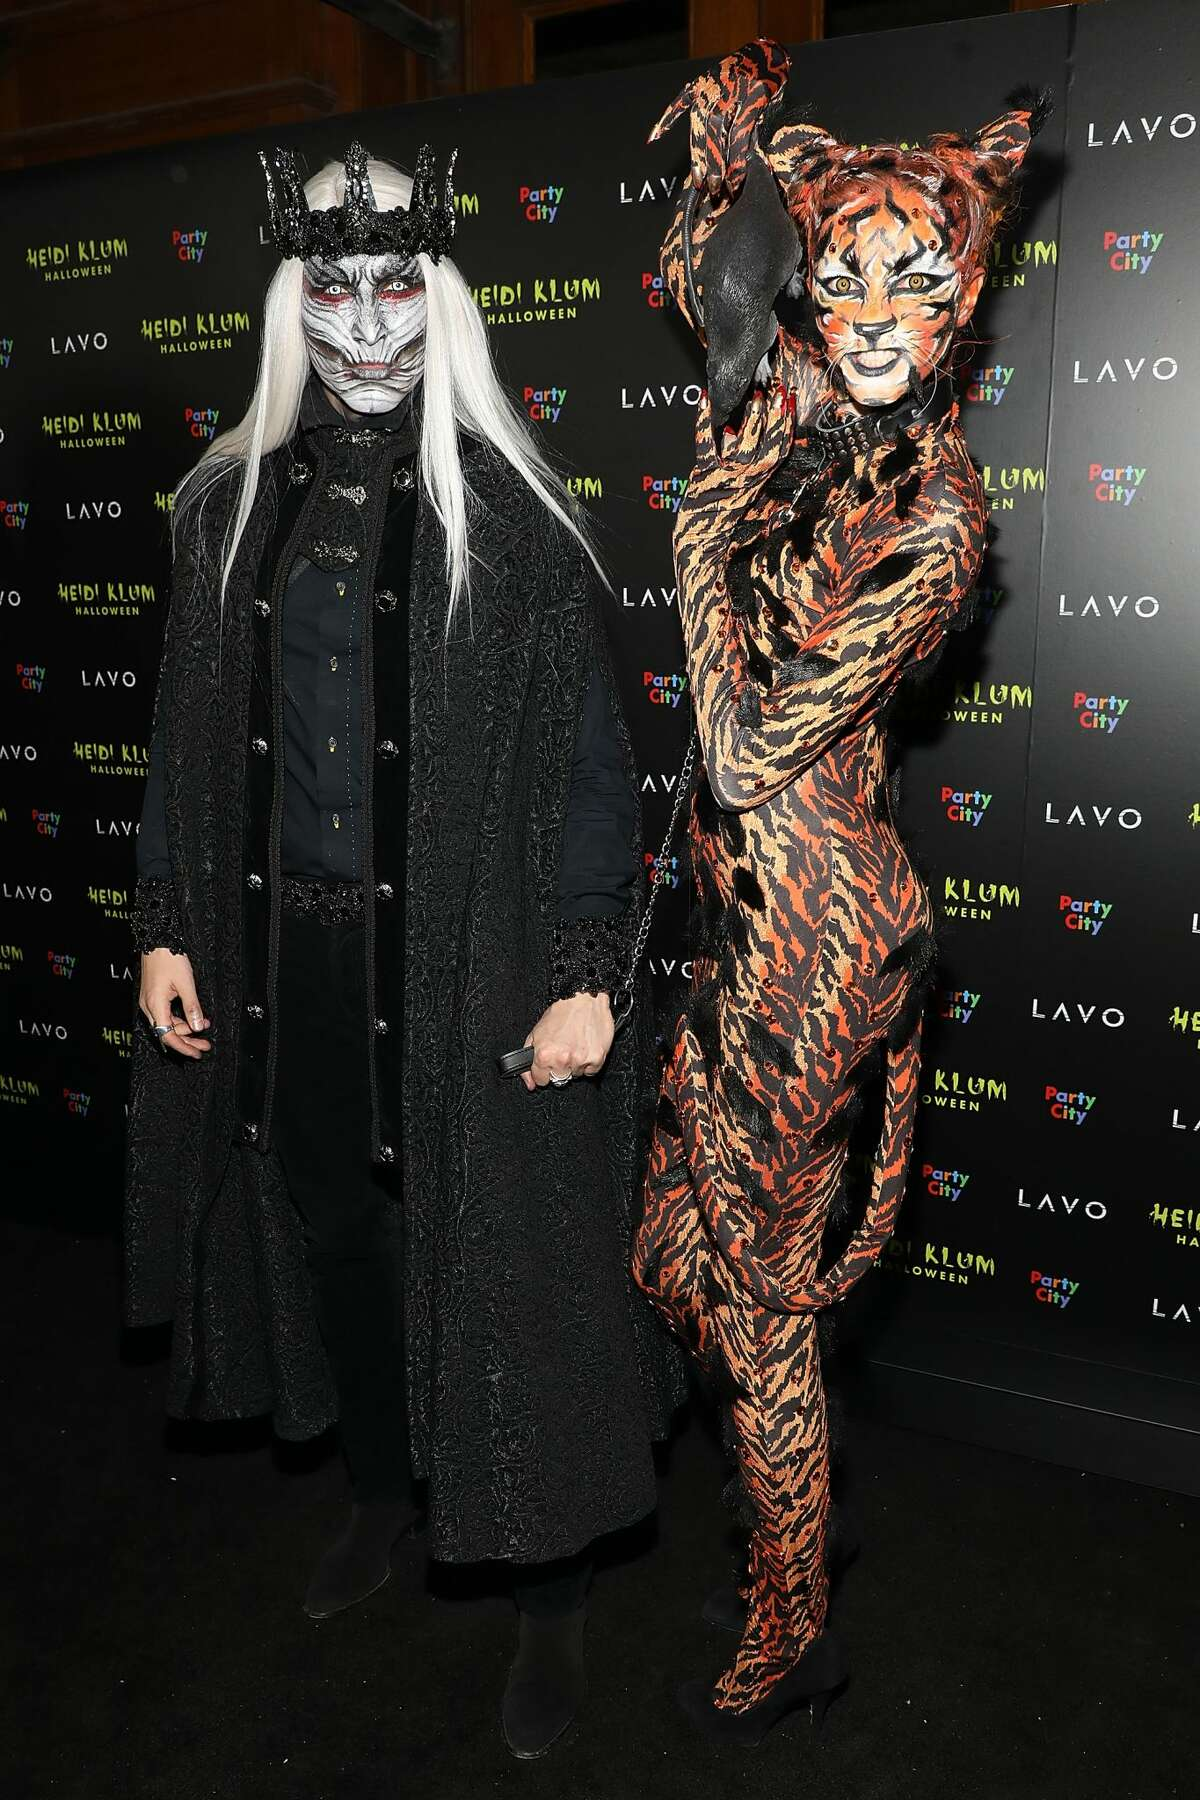 Guests attend Heidi Klum's 19th Annual Halloween Party at Lavo on October 31, 2018 in New York City. (Photo by Taylor Hill/FilmMagic)